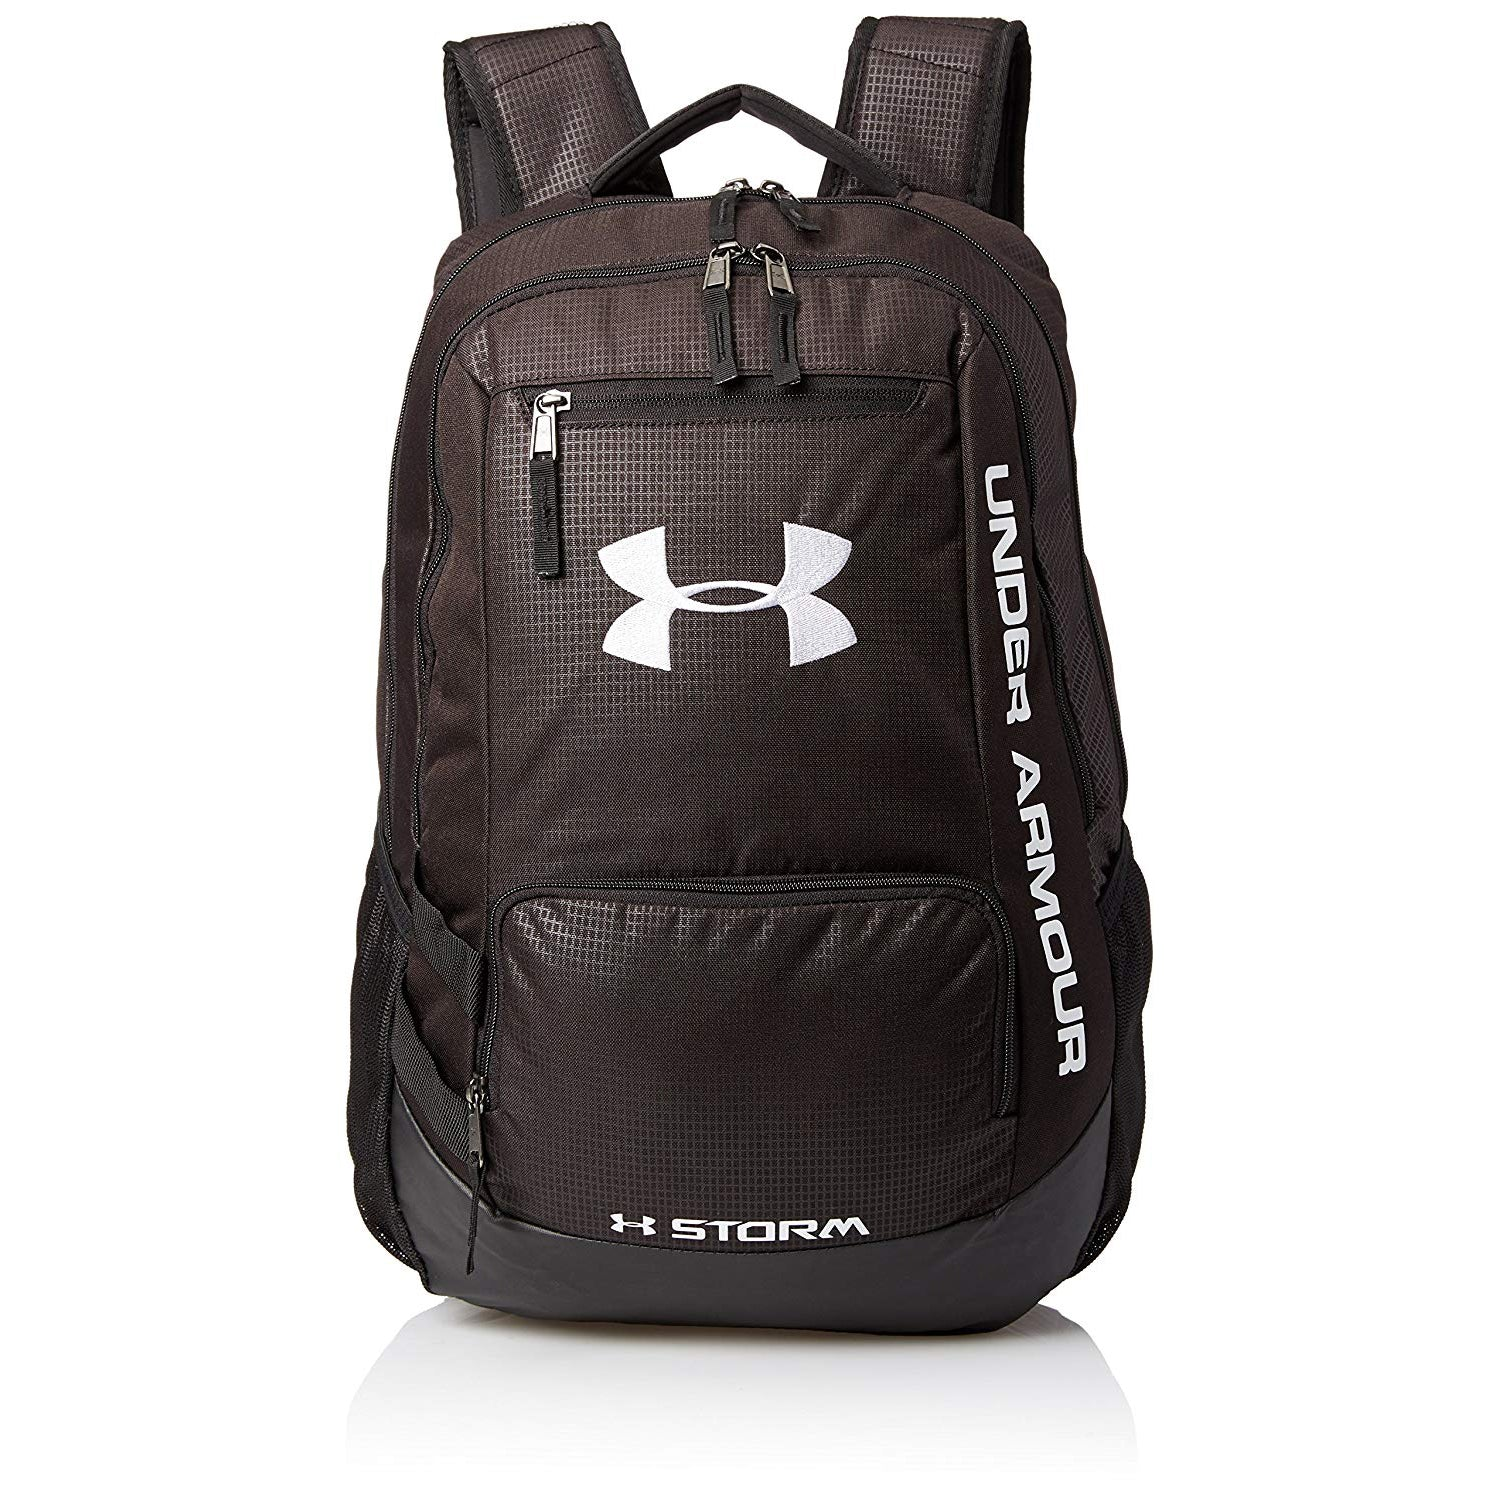 Under Armour Storm Hustle II Backpack - HYDRA Tactical b3372508764e4